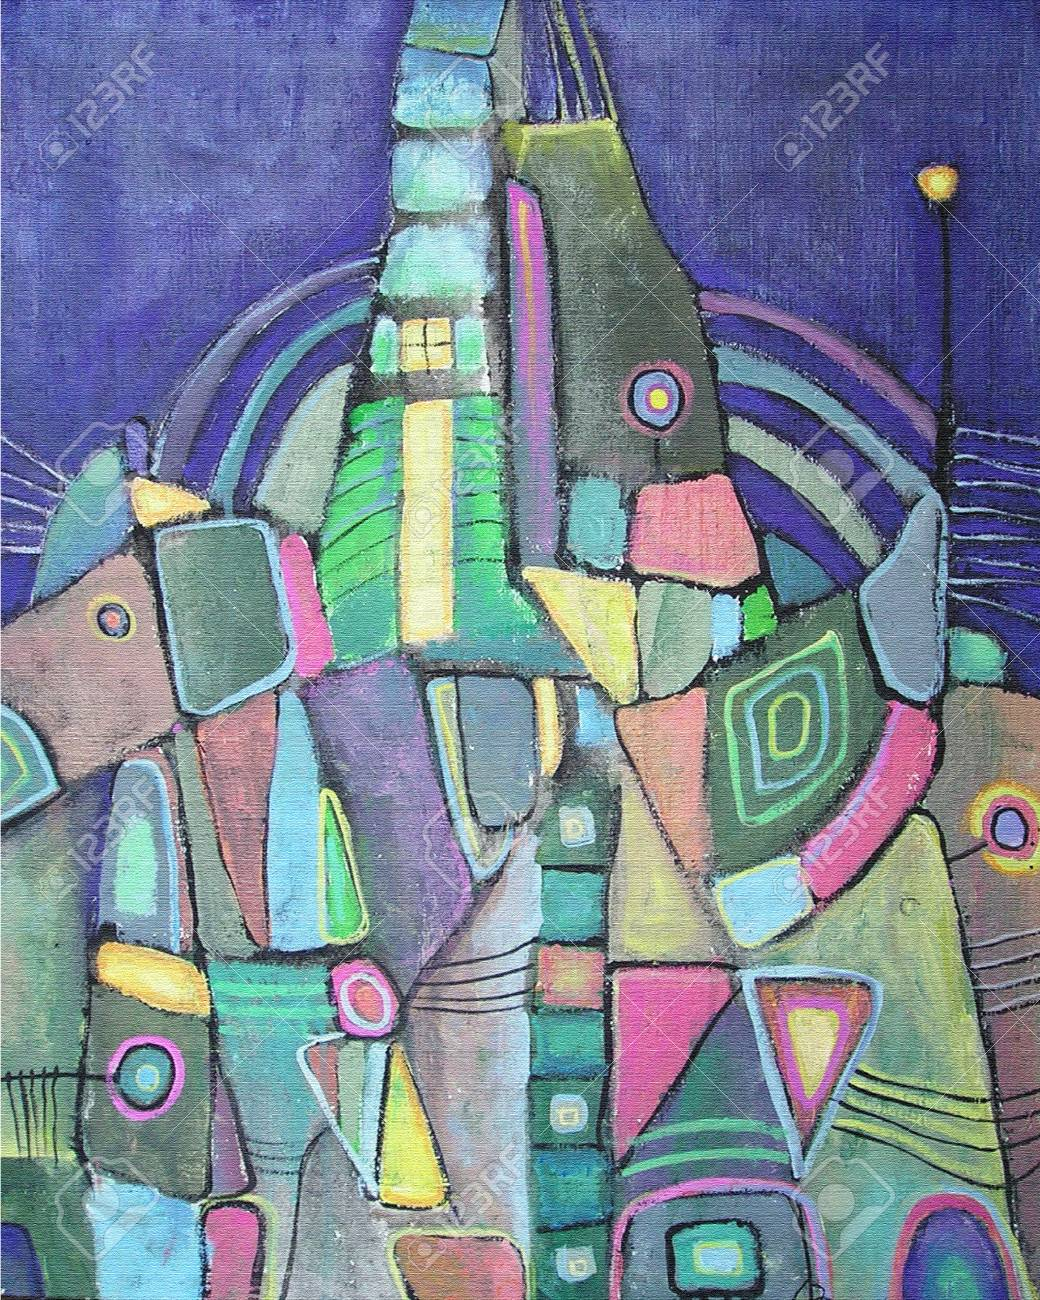 Acrylic Colorful Abstract Painting Night City With Different